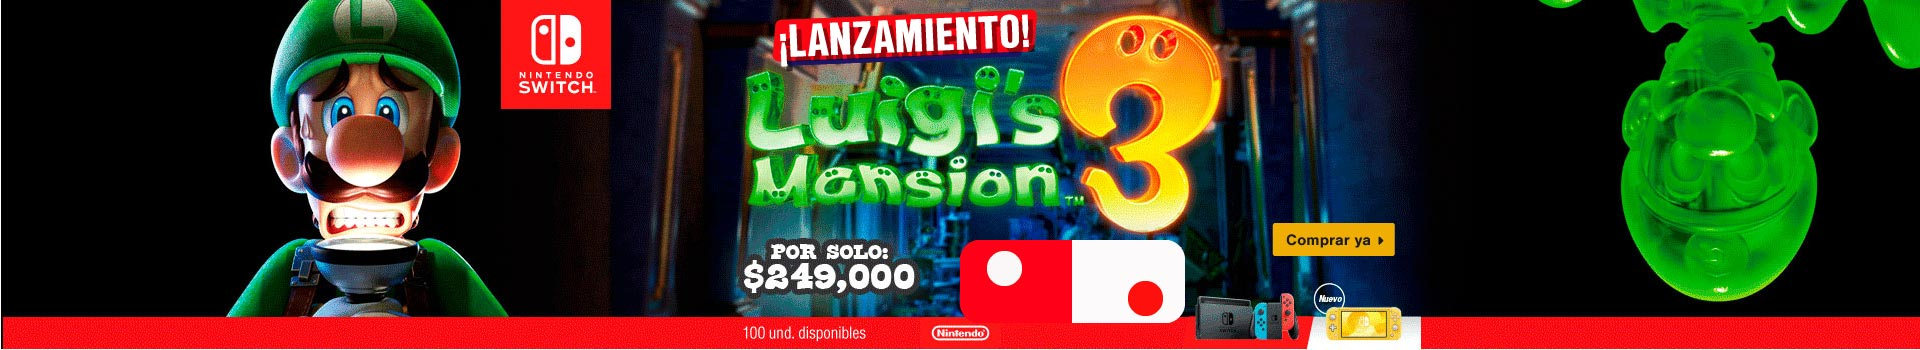 AK-KT-BACT-1-Juego Switch Luigis Mansion 3-13-NOVIEMBRE